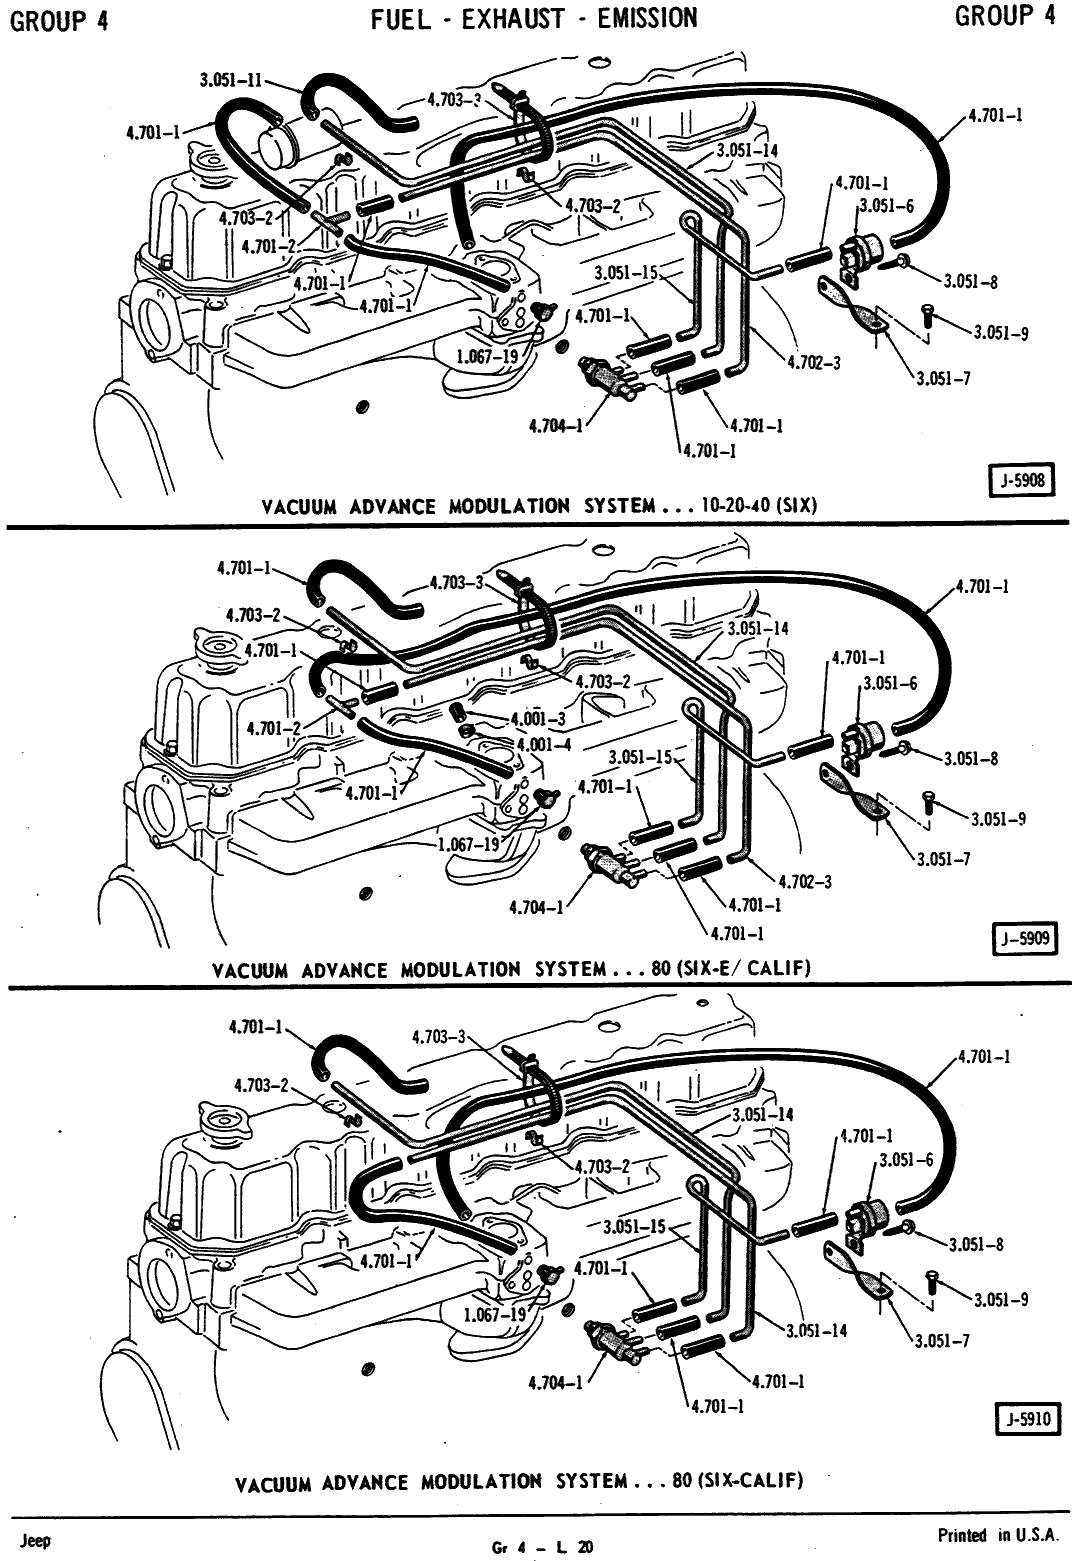 Jeep Grand Cherokee Diagrams Simple Guide About Wiring Diagram 04 Vacuum Line Routing 2004 Electrical